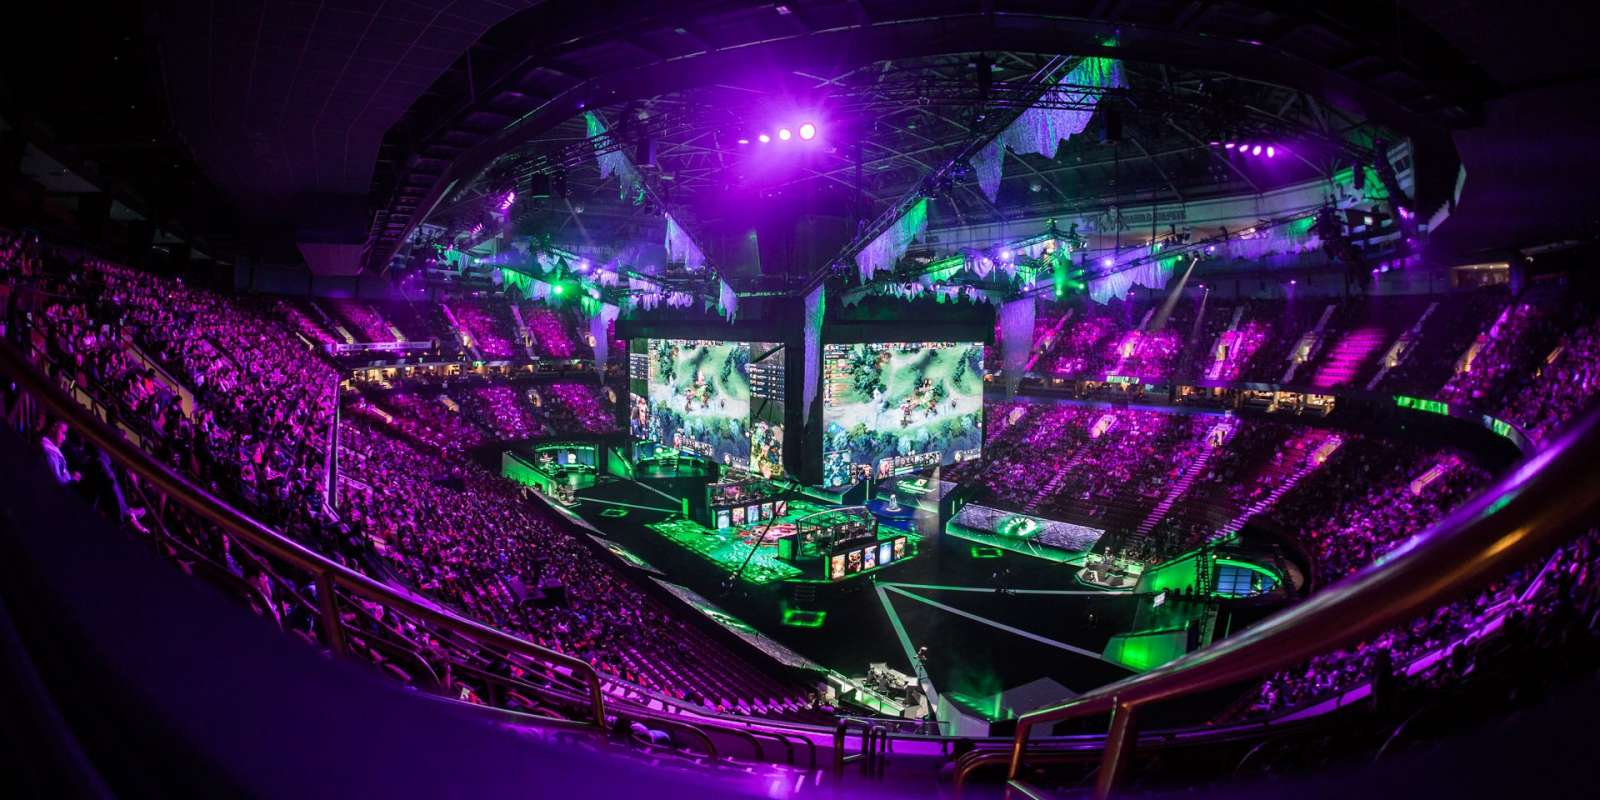 General ambient shots at The International 2018